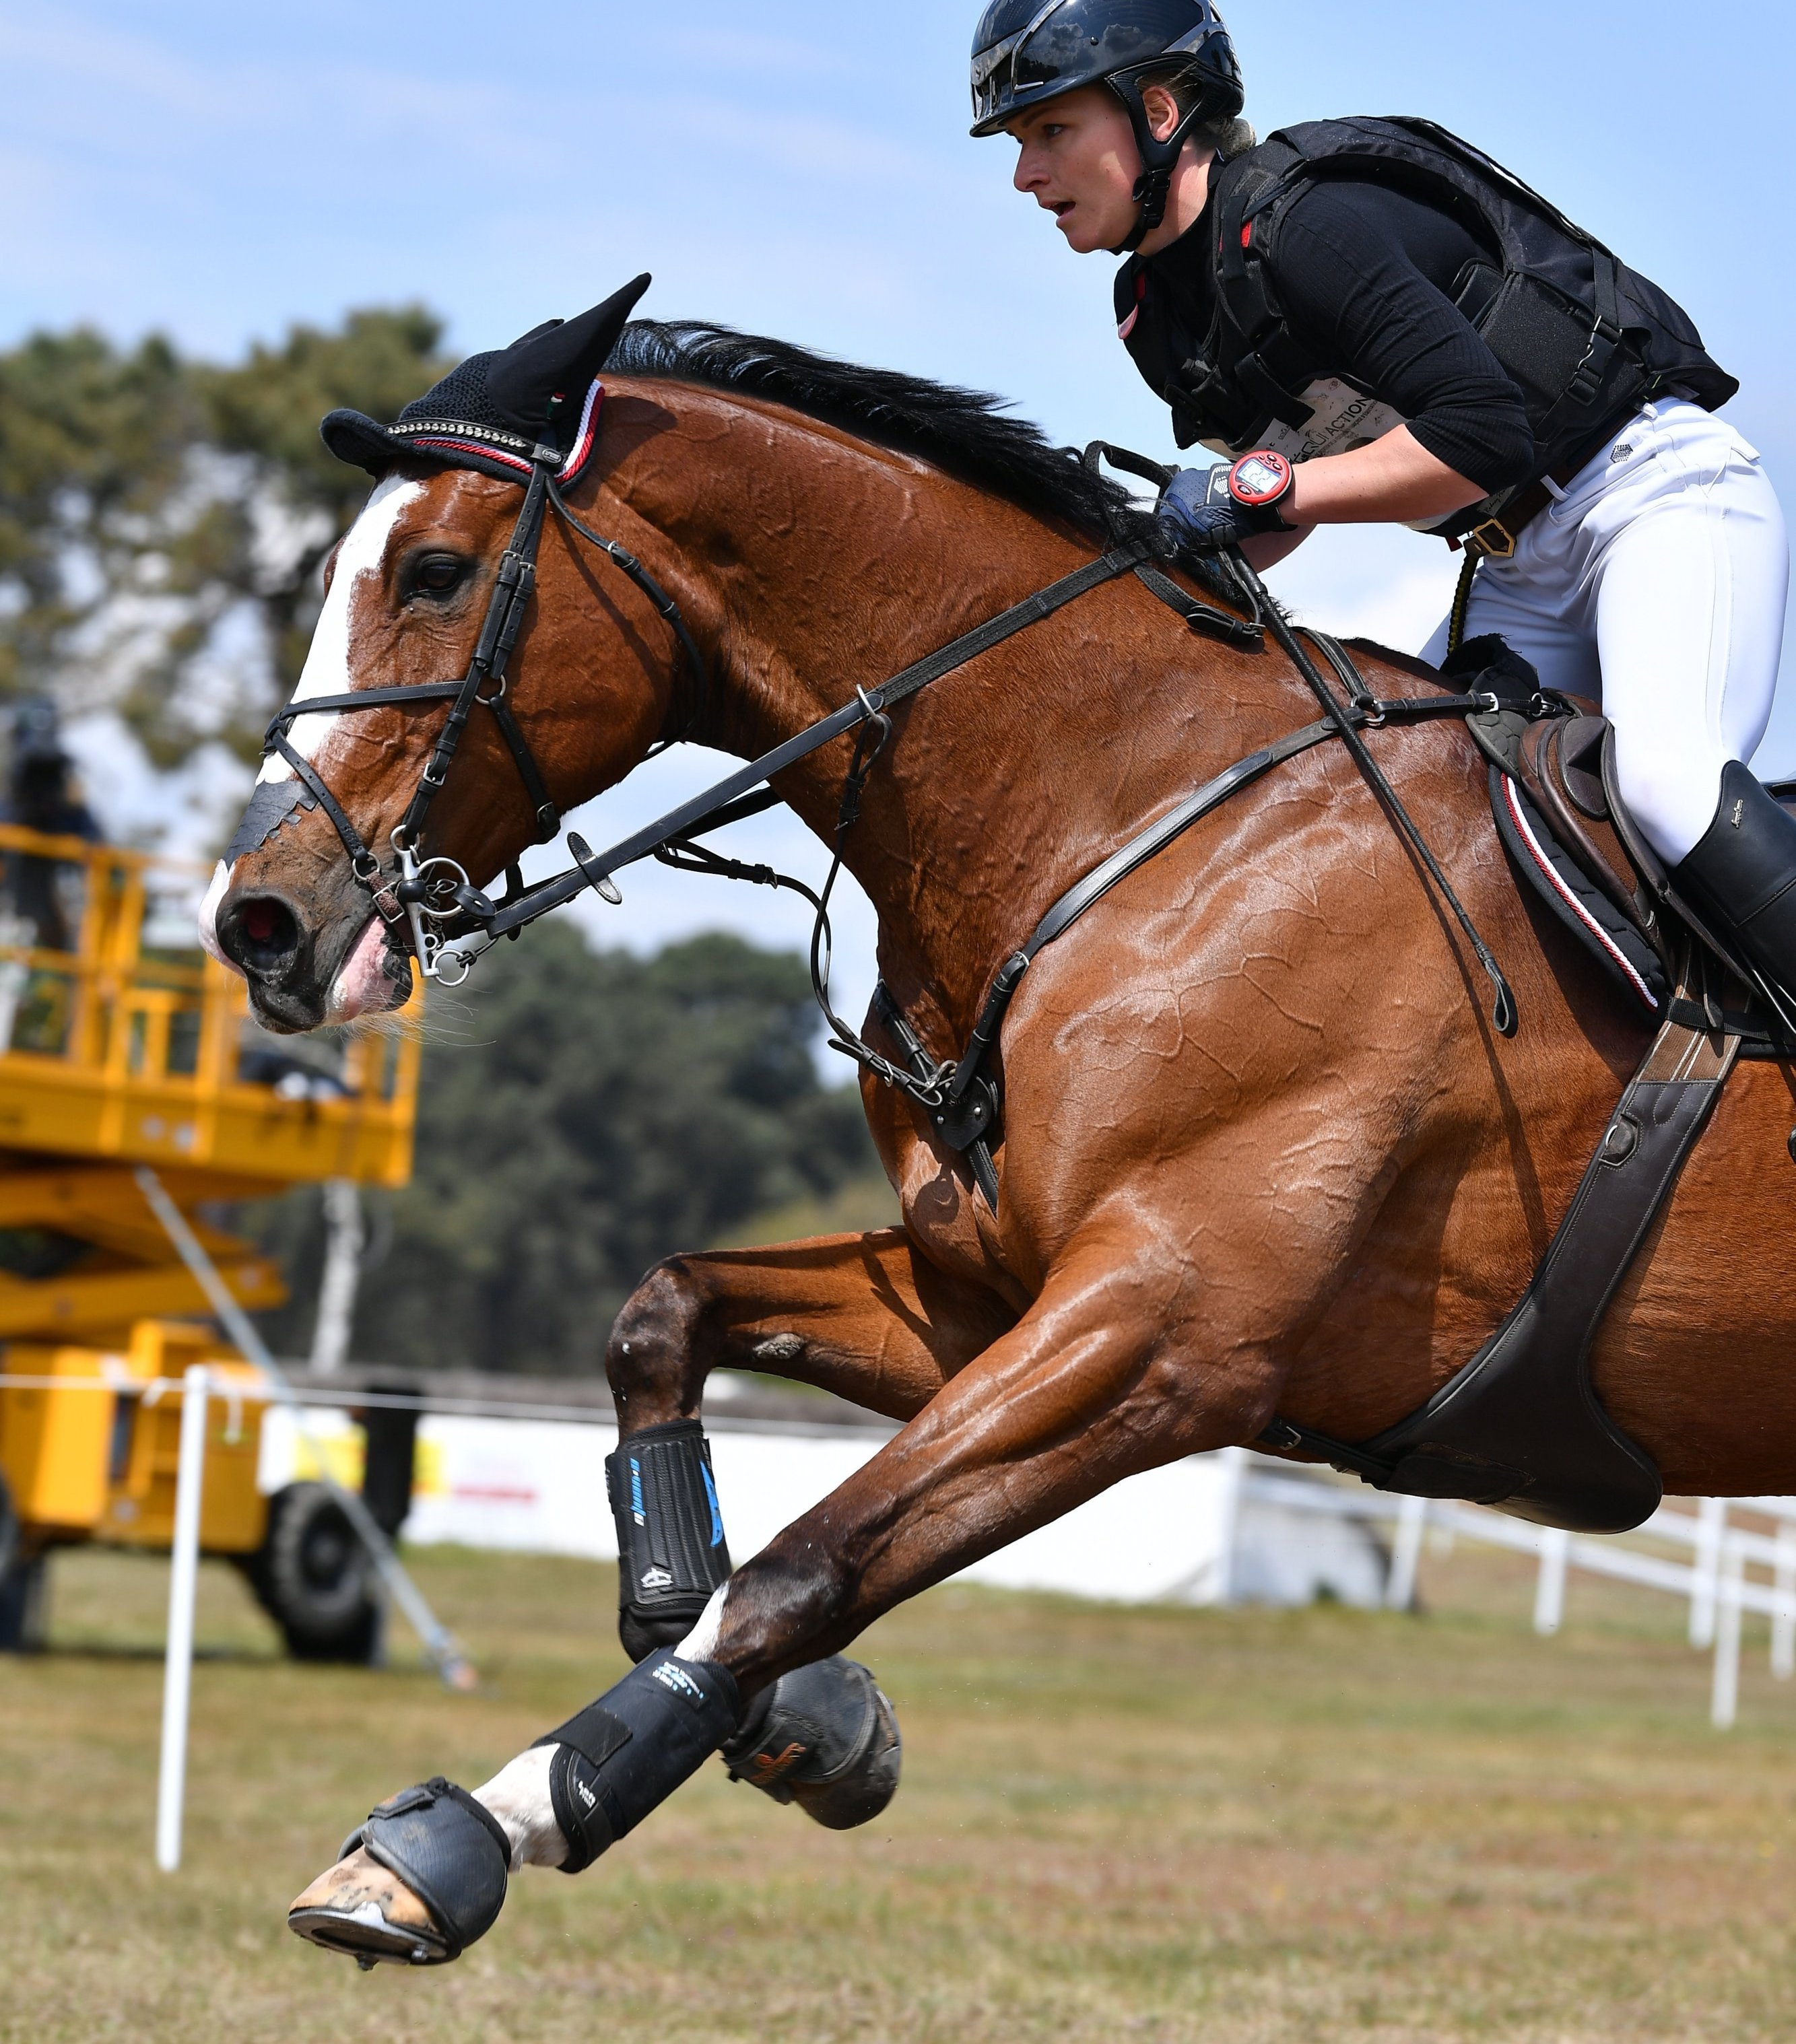 Saumur Complet: Germany's Julia Krajewski still in the lead after cross-country test